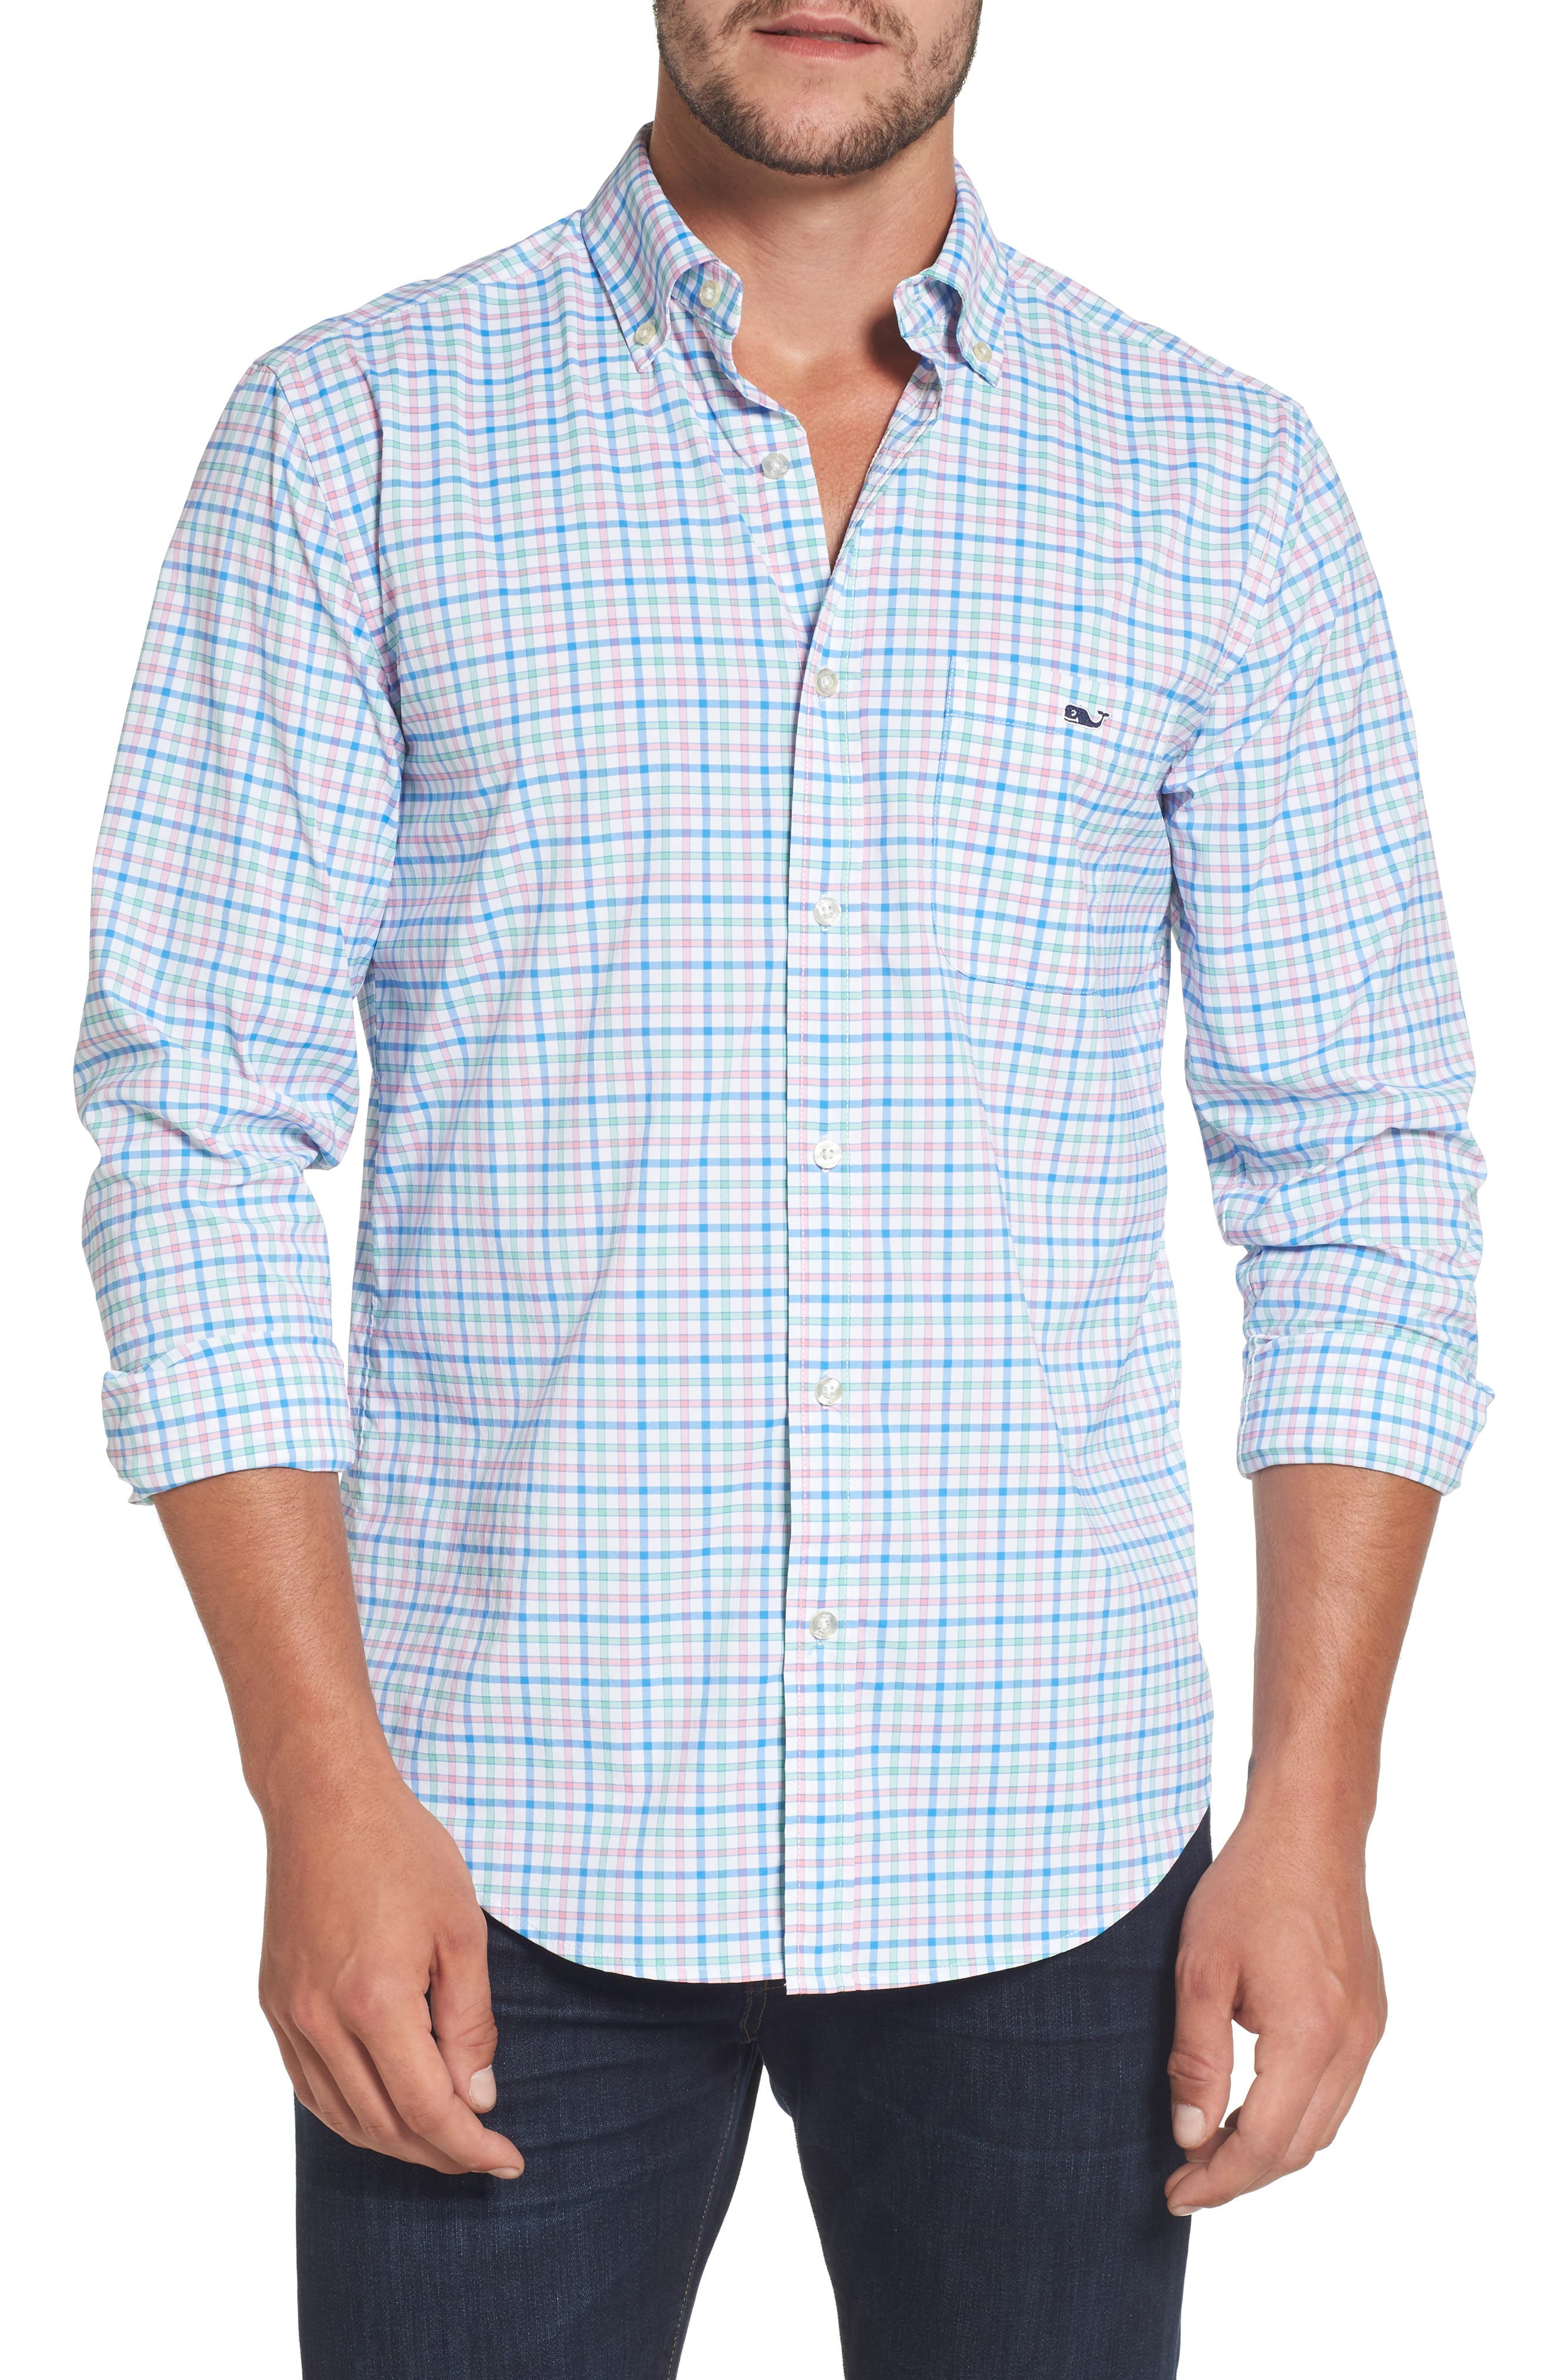 Alternate Image 1 Selected - vineyard vines Tucker Orchid Check Performance Sport Shirt